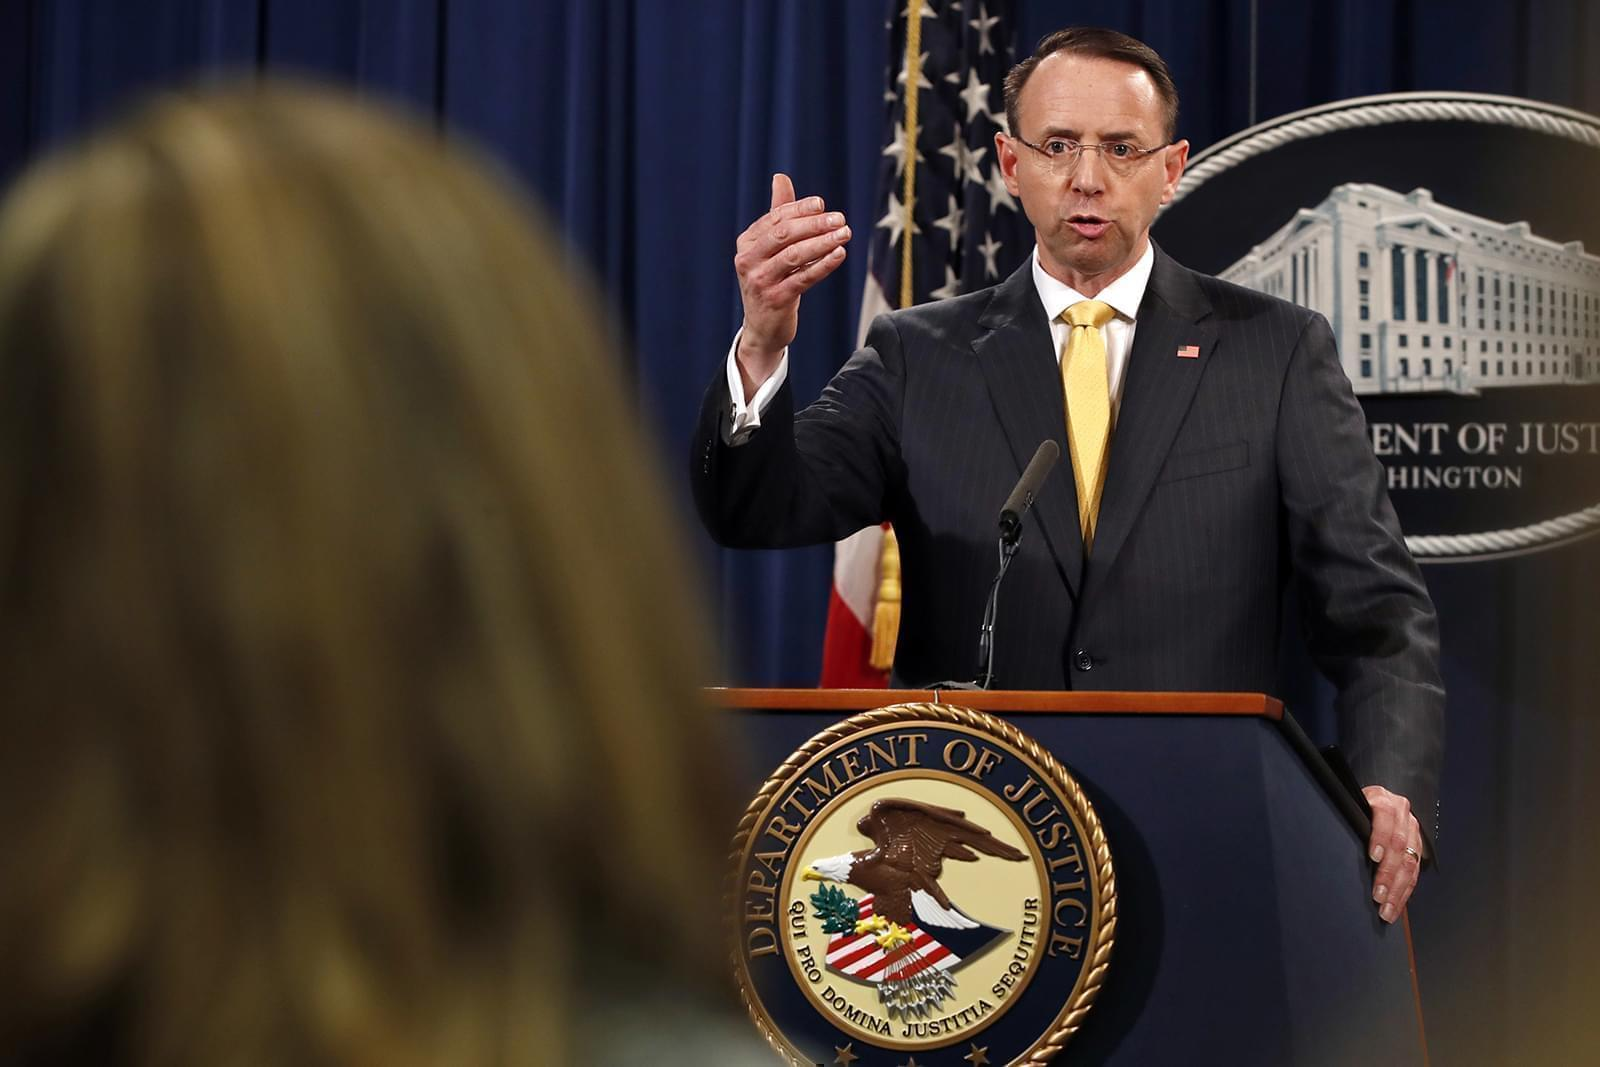 Deputy Attorney General Rod Rosenstein answers a question after announcing that the office of special counsel Robert Mueller announced a grand jury has charged 13 Russian nationals and several Russian entities, Friday, Feb. 16, 2018, in Washington.